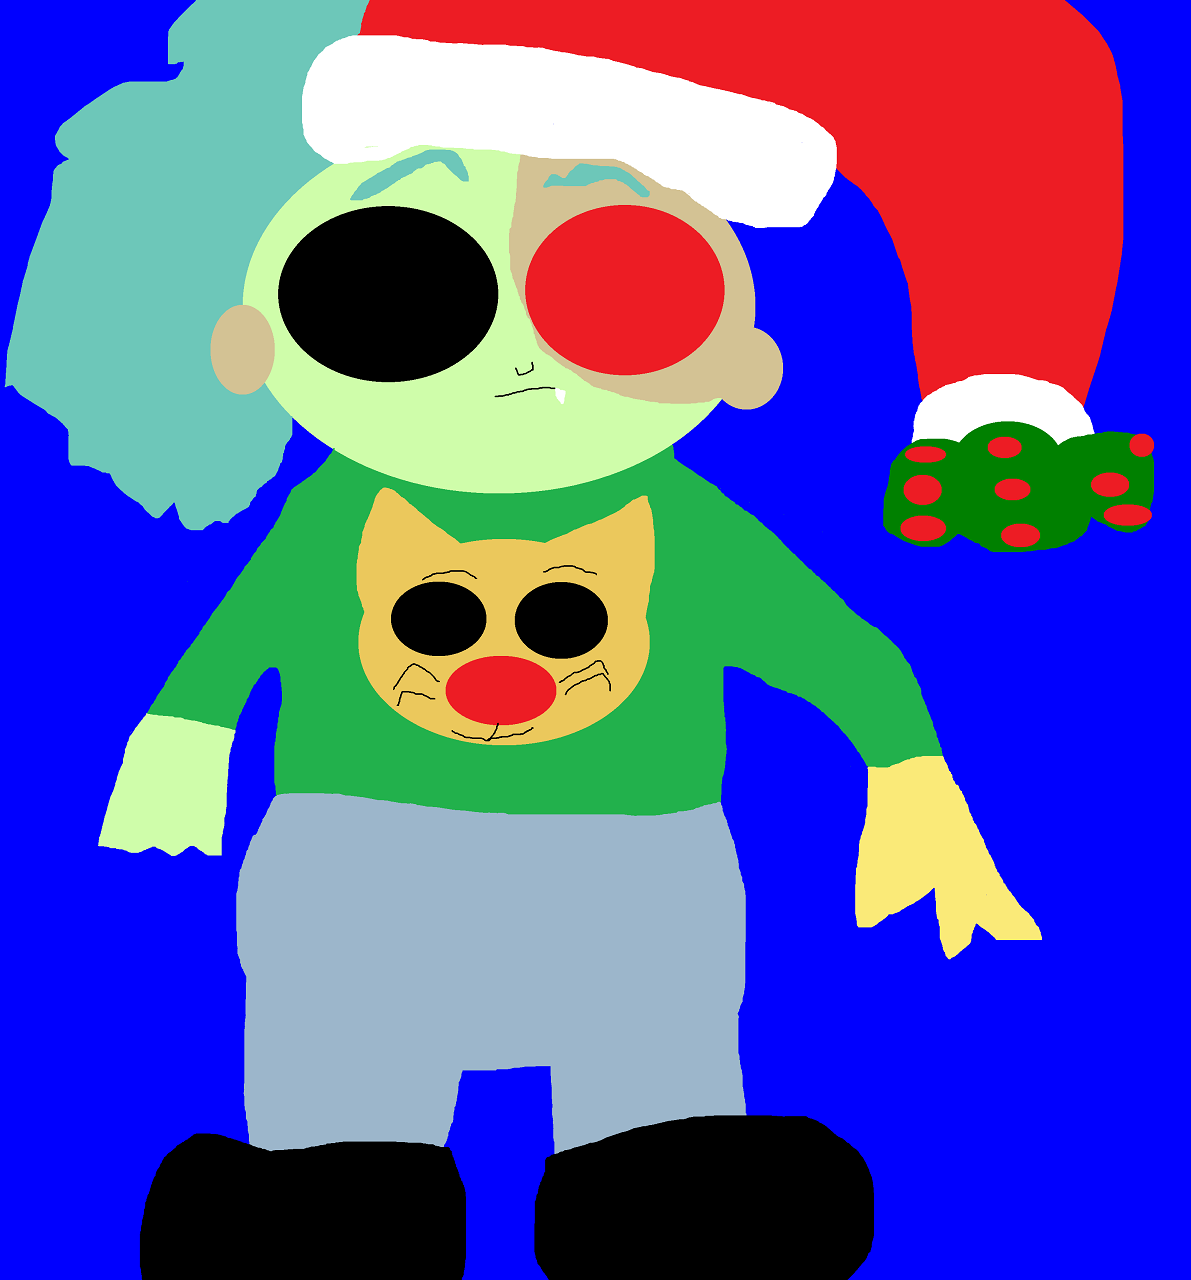 Boxman's Other Ugly Christmas Sweater by Falconlobo